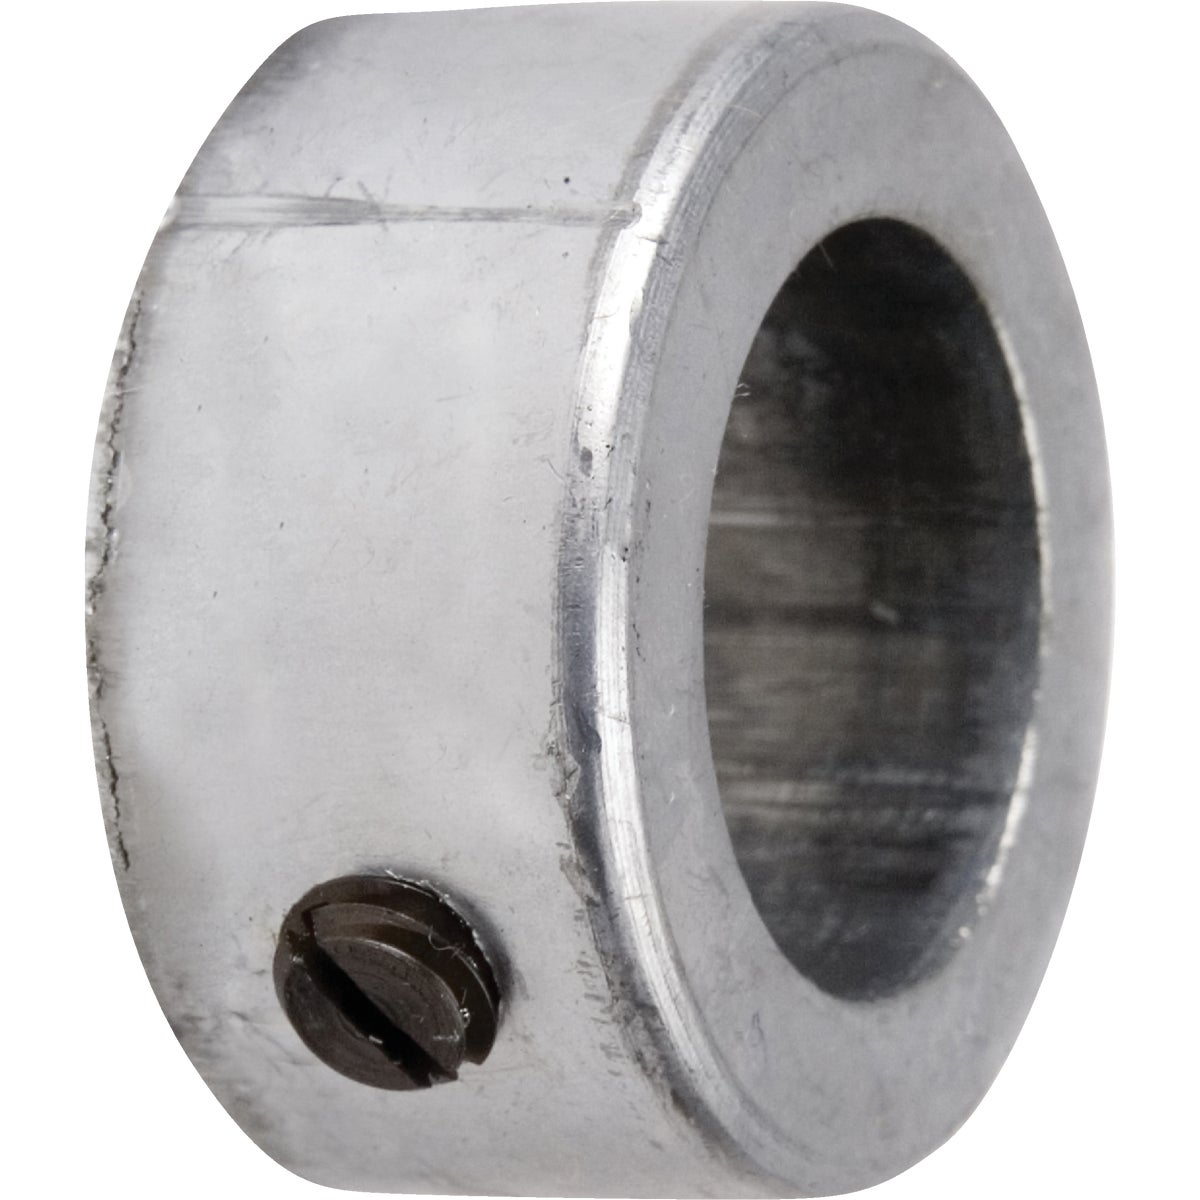 "5/16"" SHAFT COLLAR - 3005 by Chicago Die Casting"